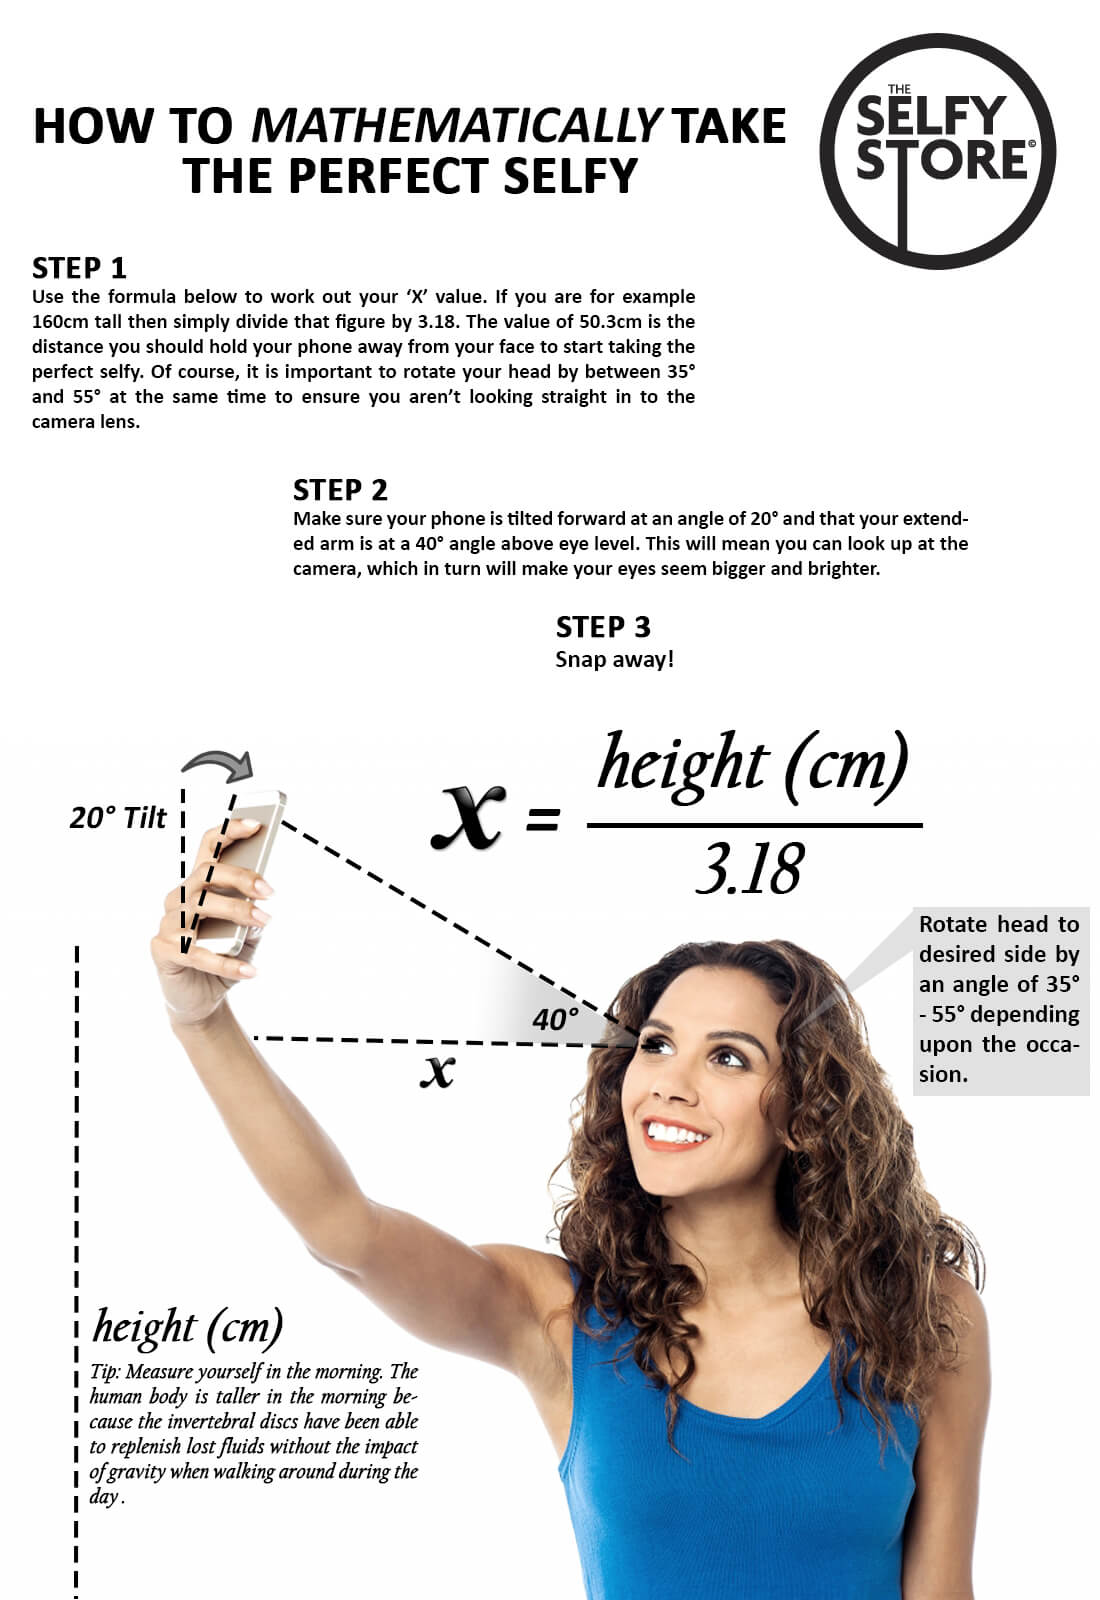 how-to-take-the-perfect-selfie-infographic